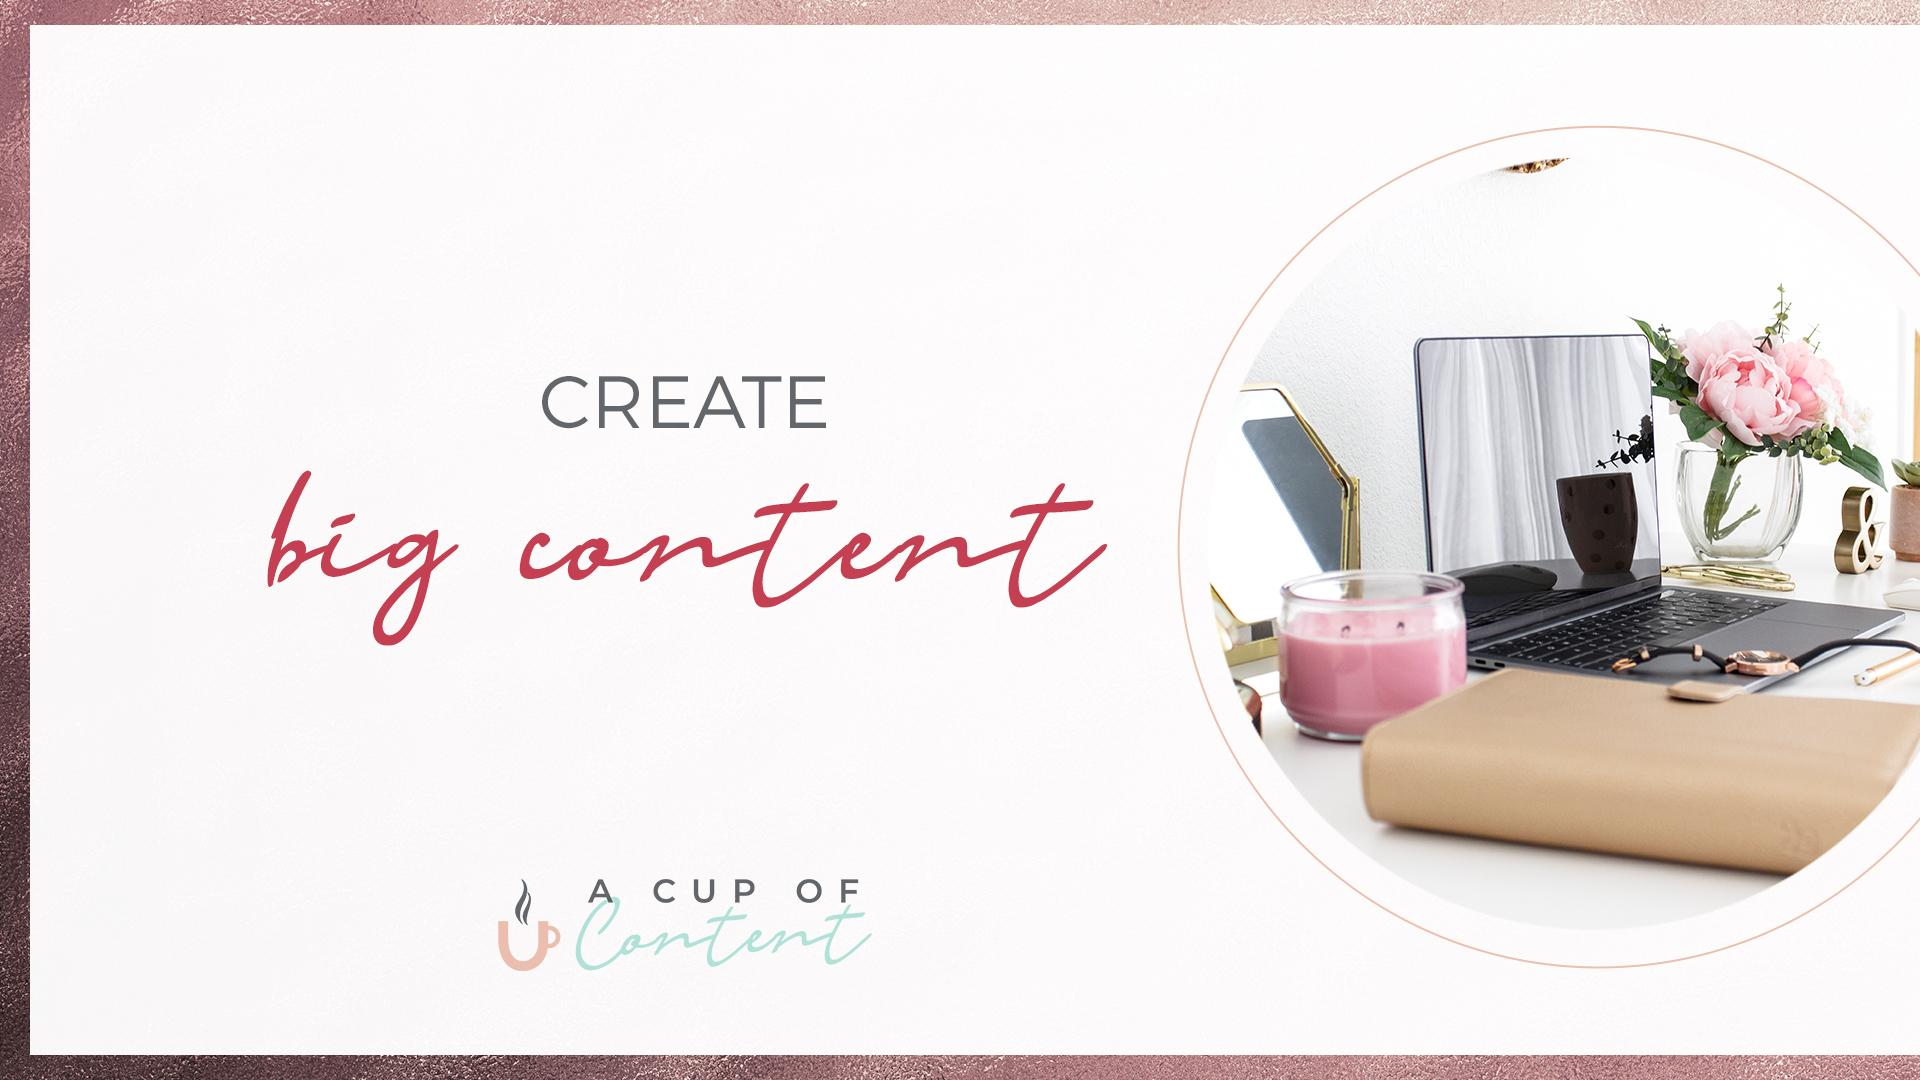 a cup of content's blog image for creating big content